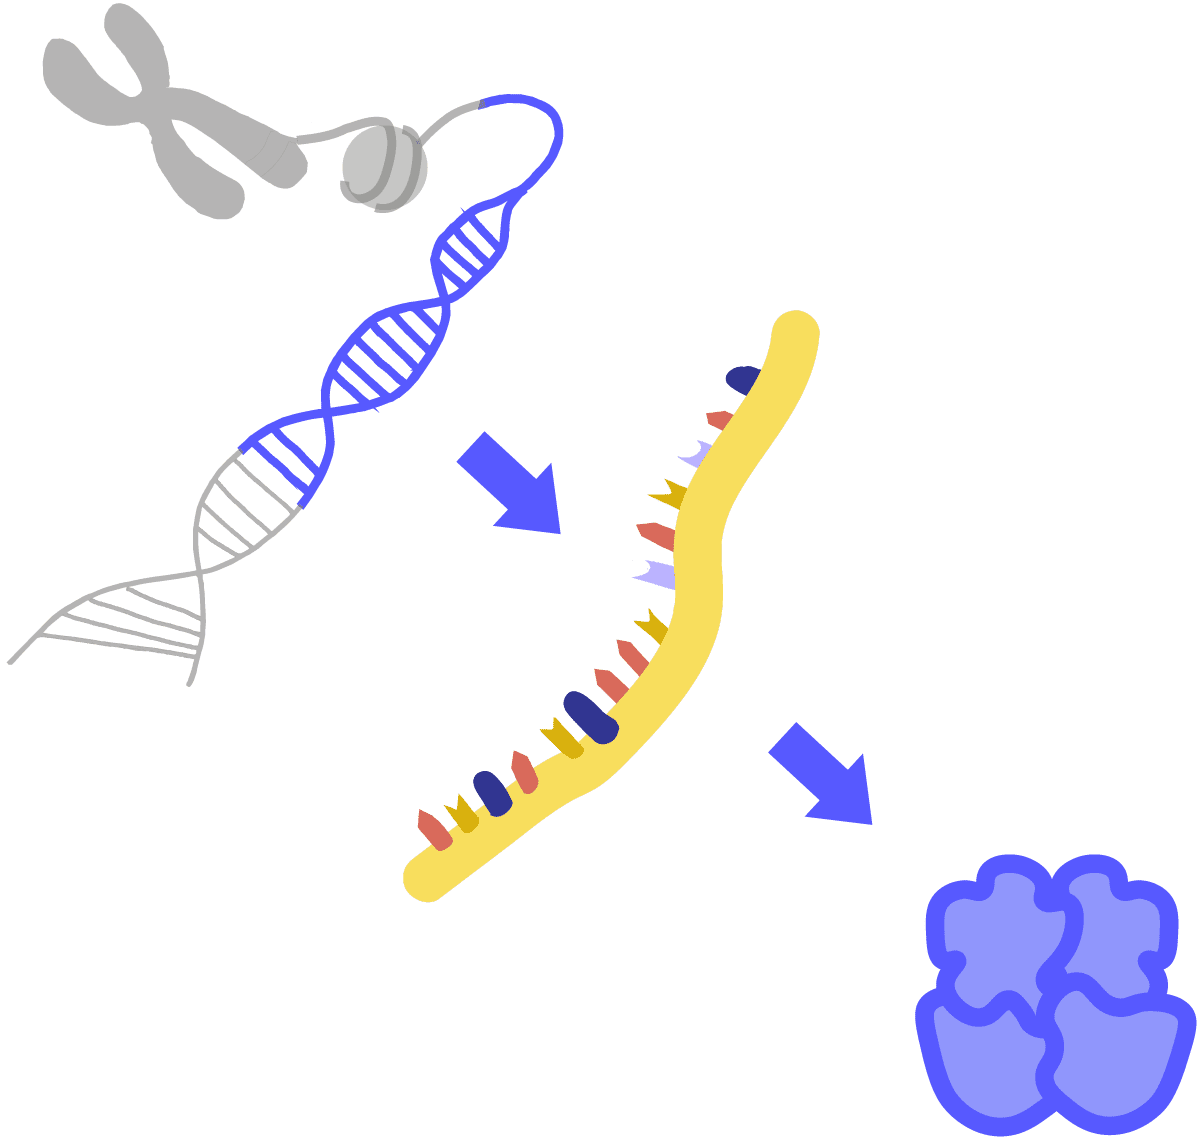 Image of gene expression. Starting with a gray chromosome, DNA nucleosomes are acetylated and chromatin is exposed. The chromatin then exposes a DNA segment that is translated into RNA to then be transcribed into a protein.